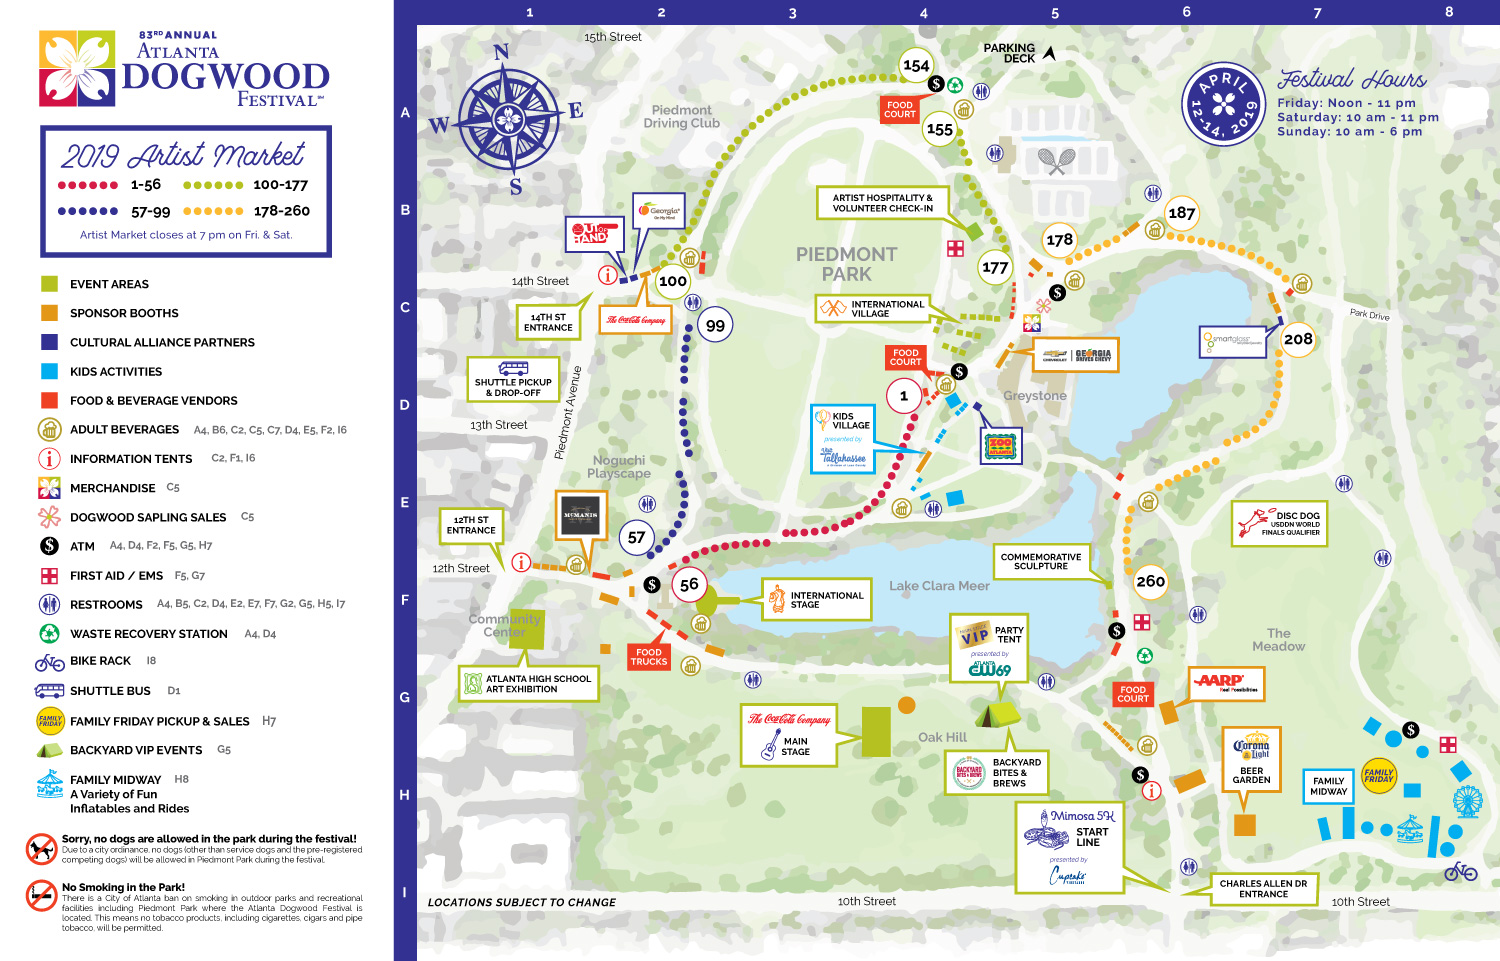 2019 Atlanta Dogwood Festival Map